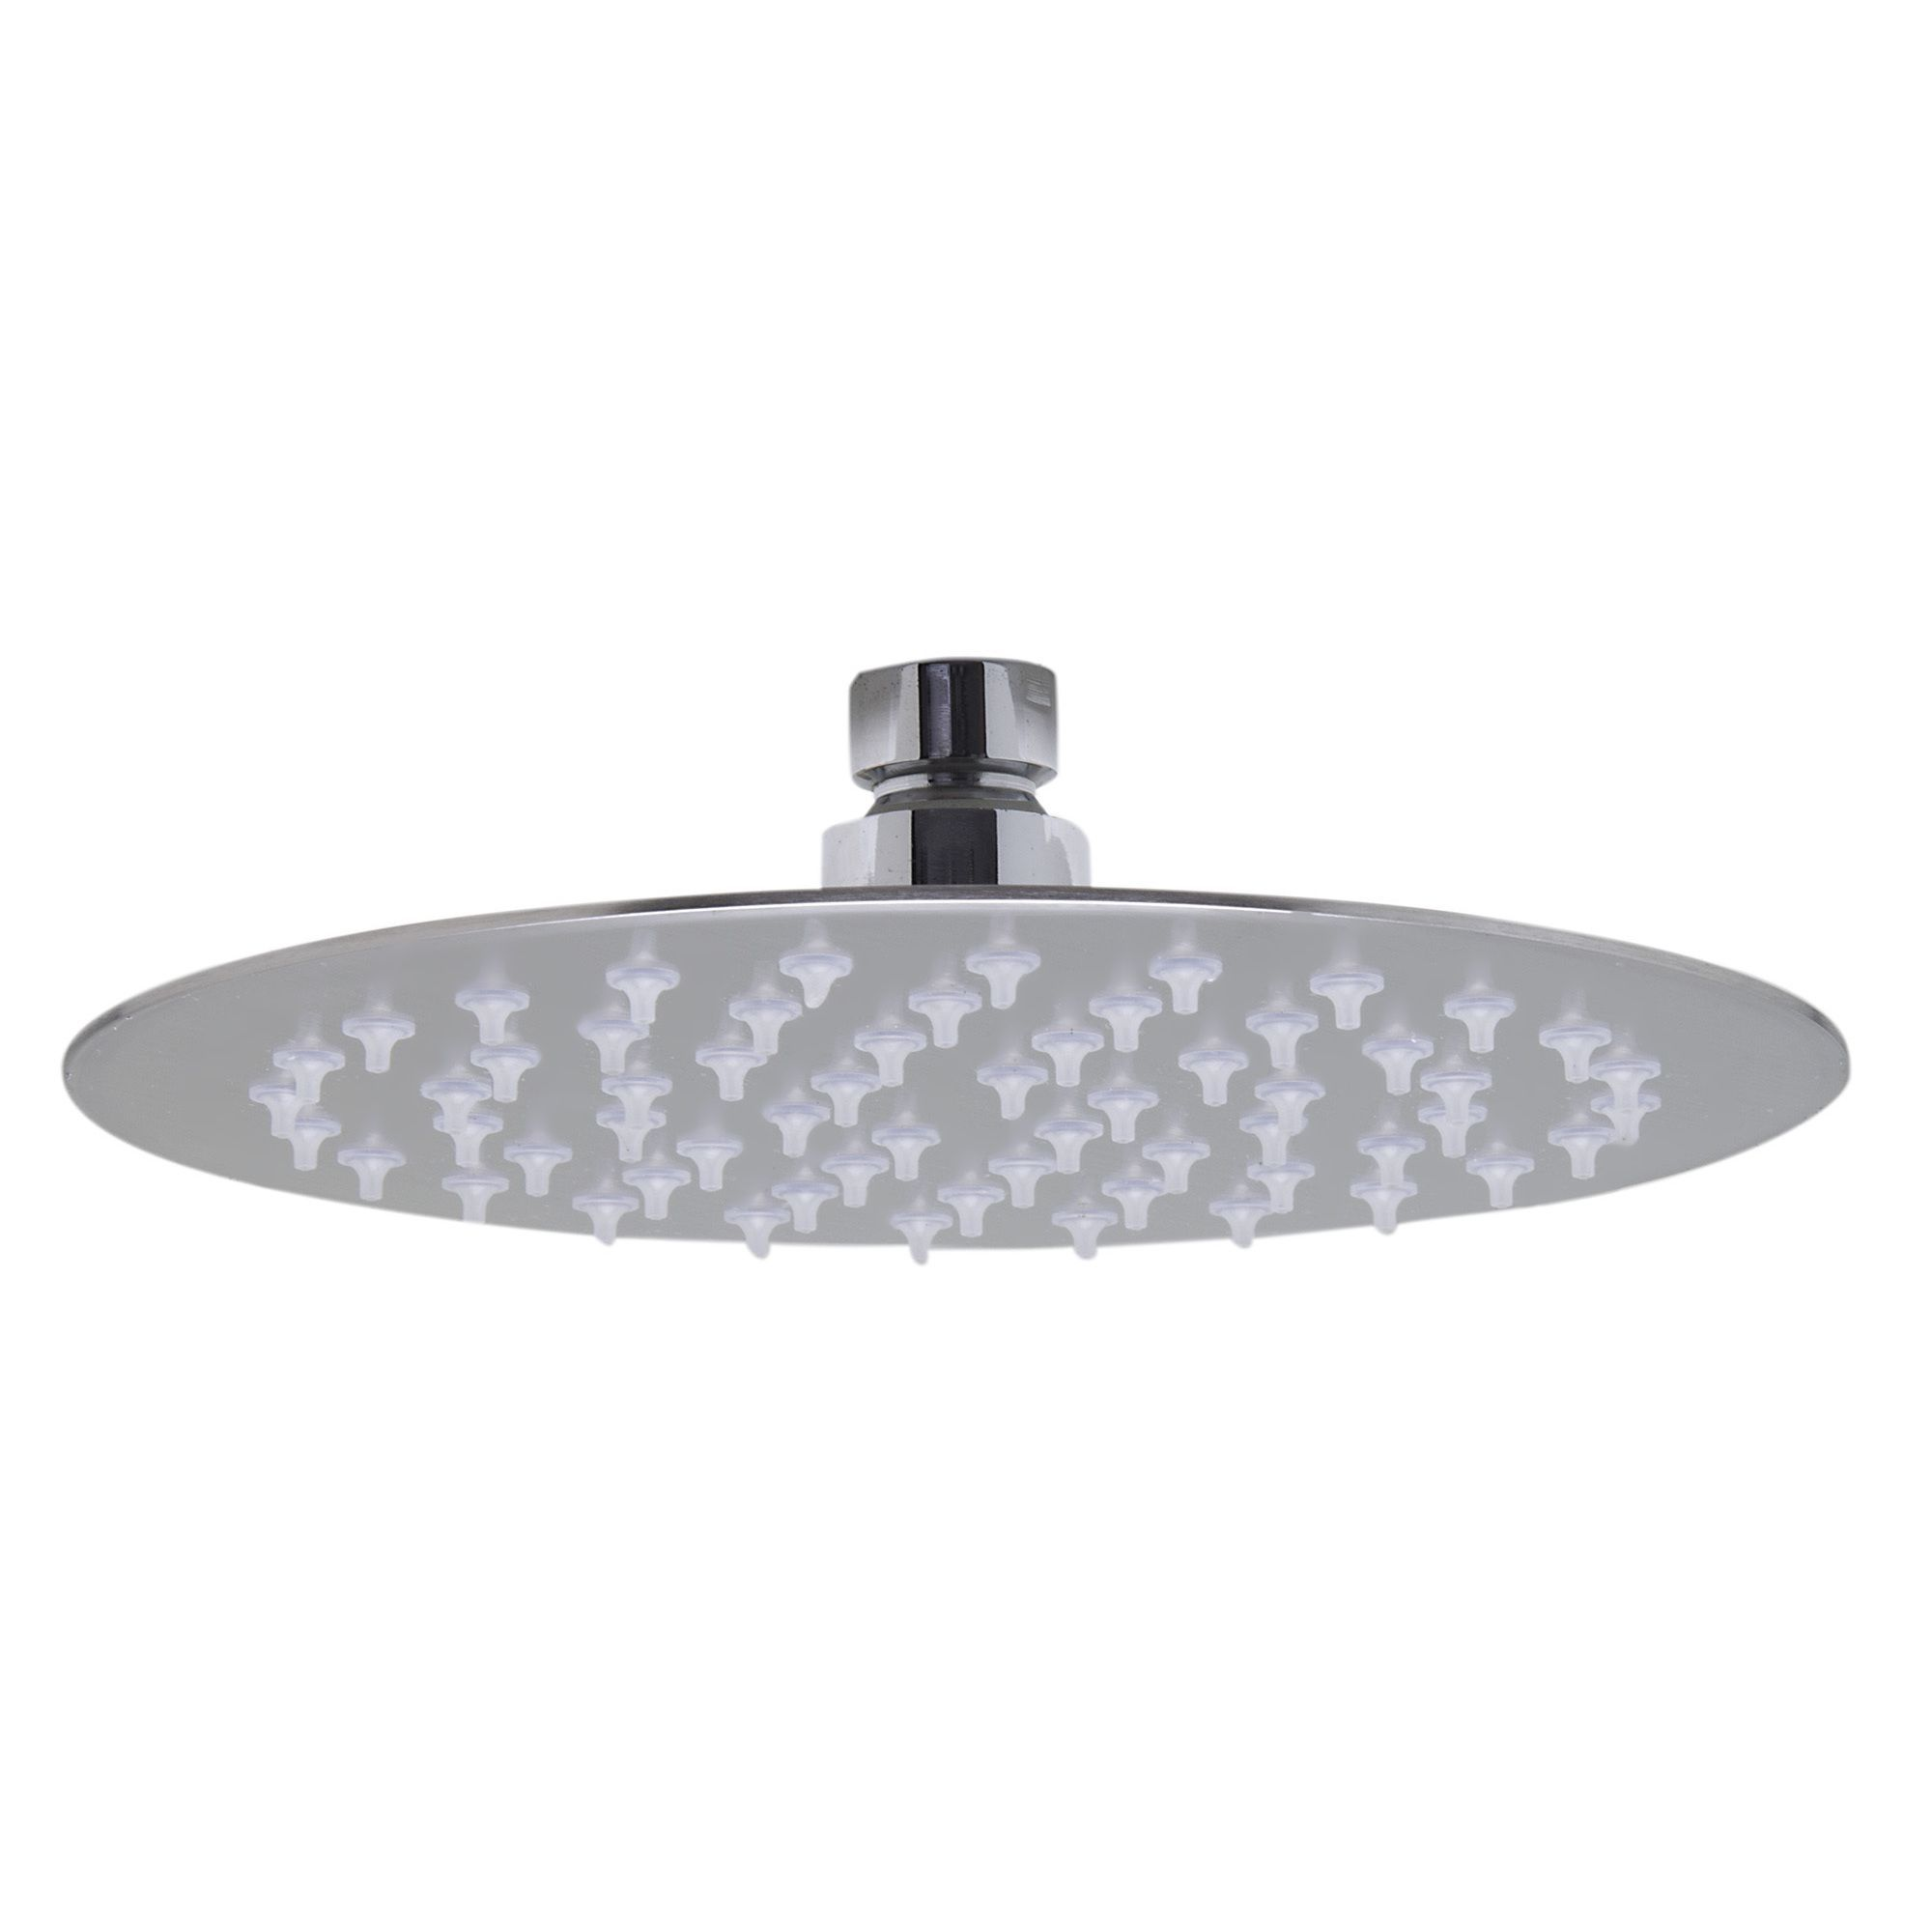 Alfi brand rainrbss brushed stainless steel inch round ultra